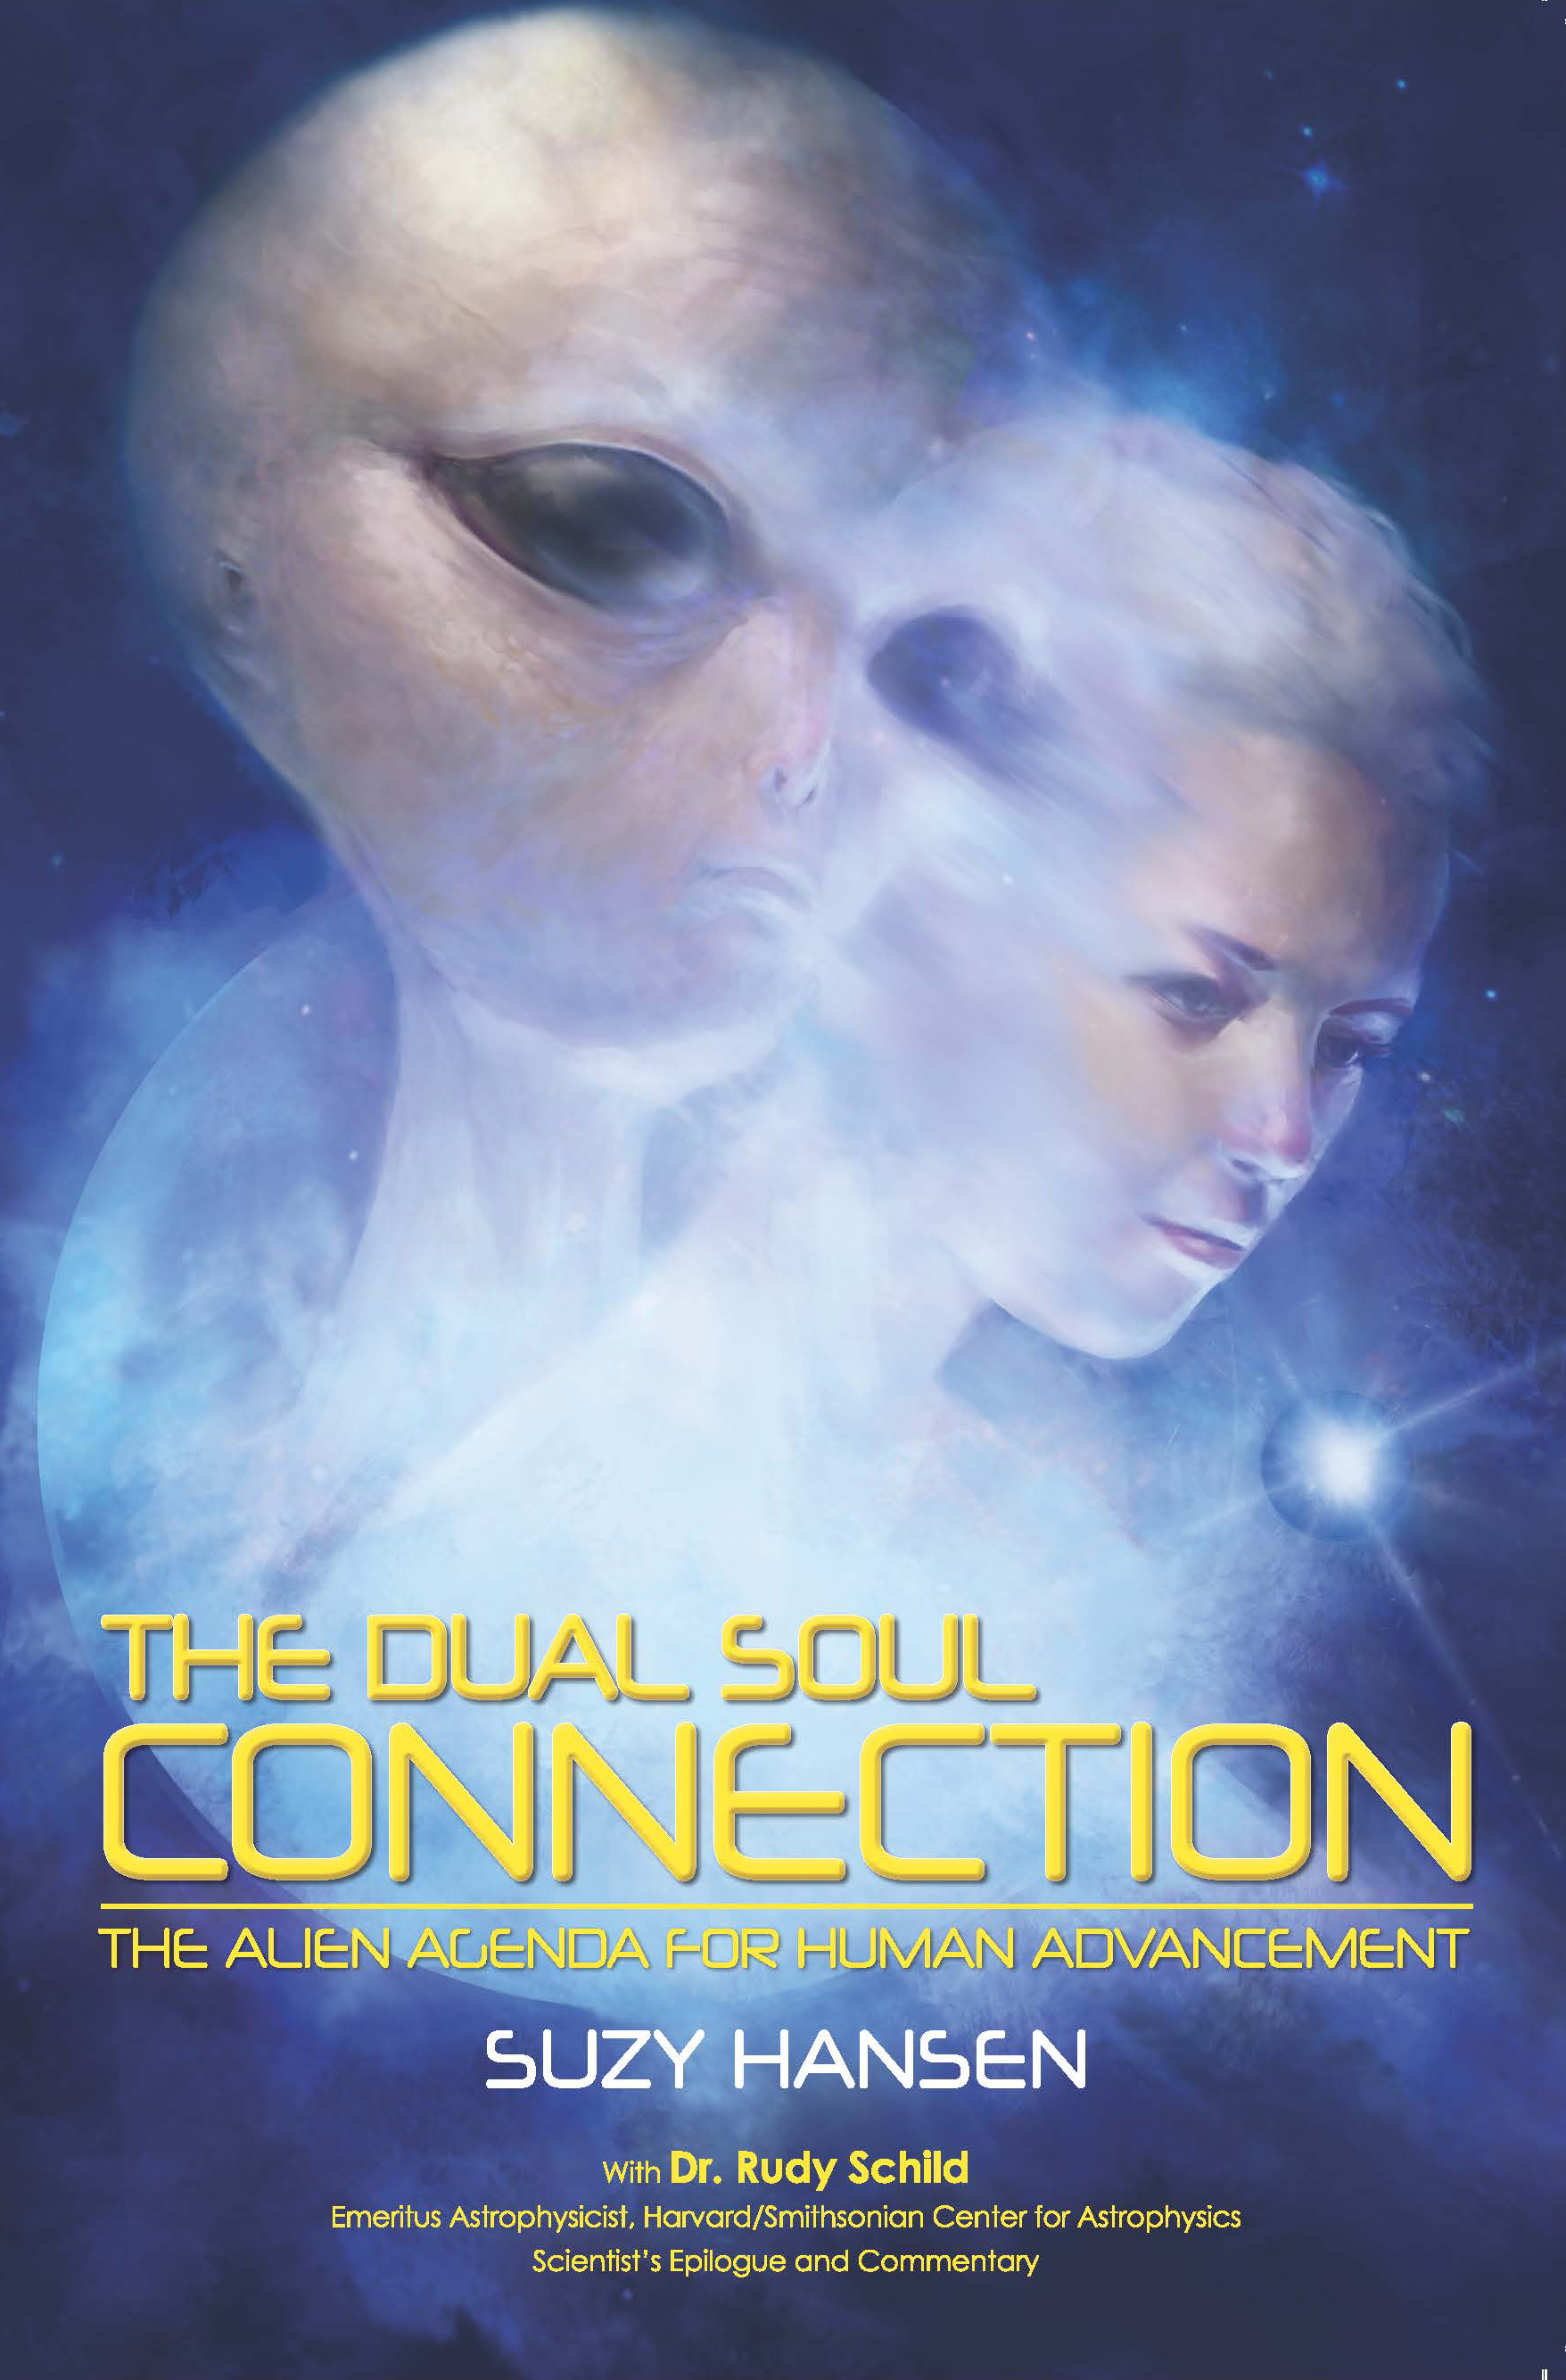 Suzy Hansen - The Dual Soul Connection